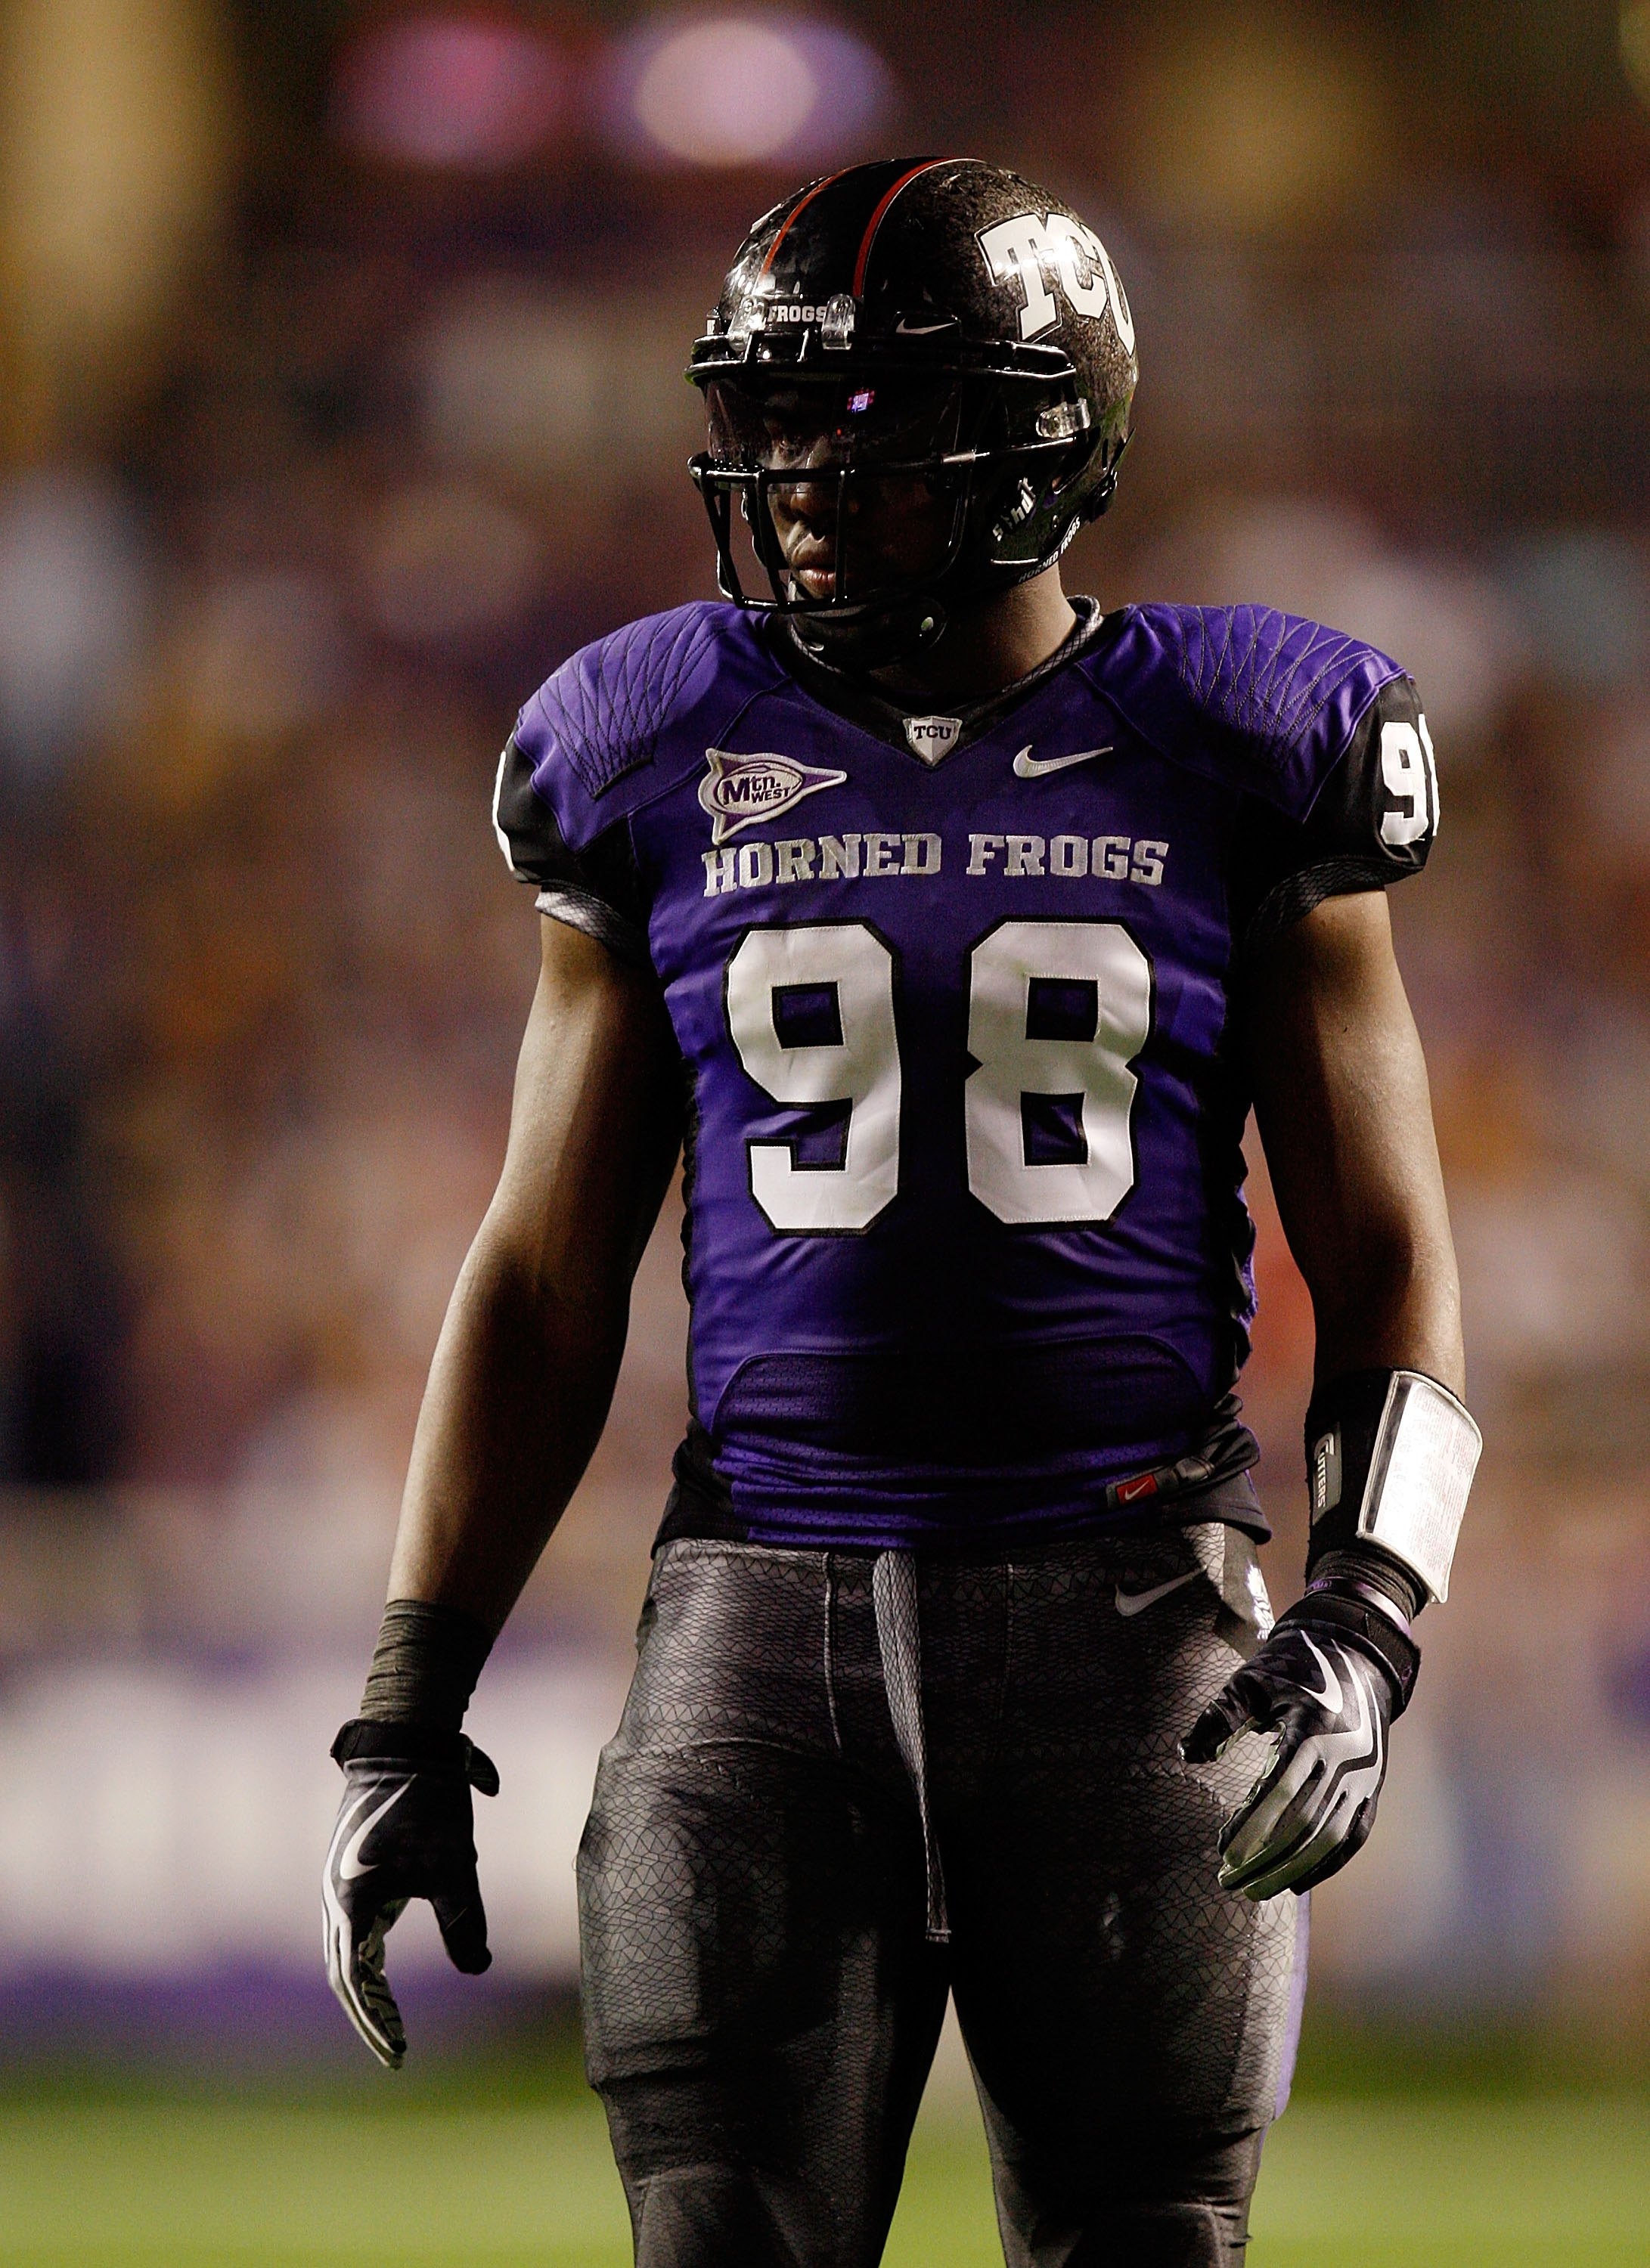 FORT WORTH, TX - NOVEMBER 14:  Defensive end Jerry Hughes #98 of the TCU Horned Frogs at Amon G. Carter Stadium on November 14, 2009 in Fort Worth, Texas.  (Photo by Ronald Martinez/Getty Images)